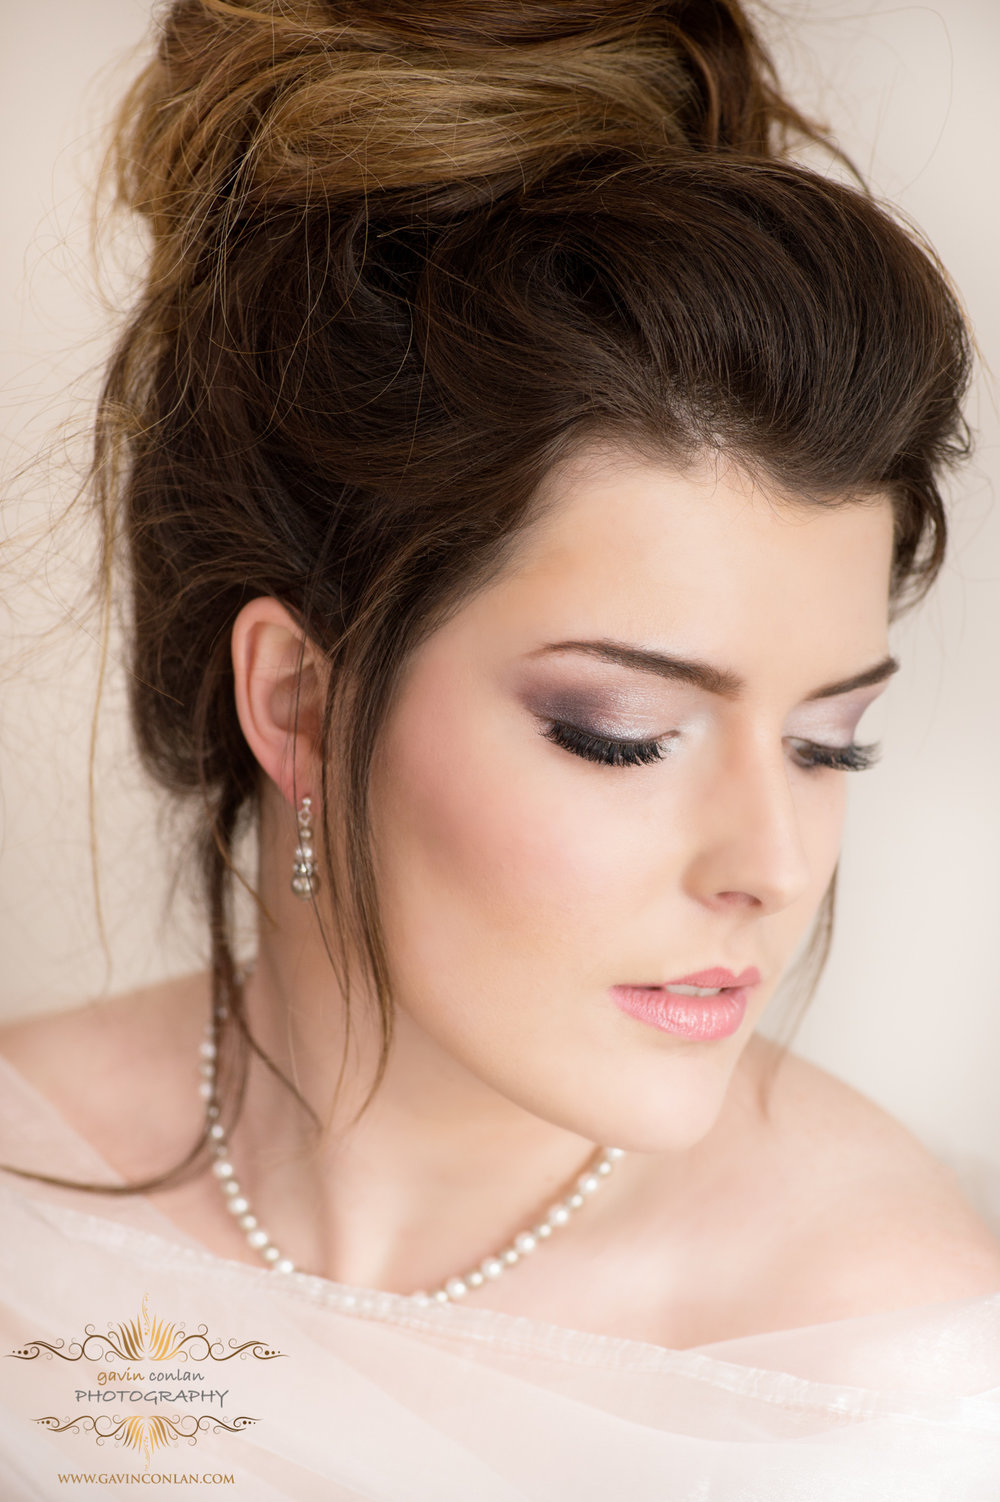 creative-bridal-hair-make-up-jewellery-photo-shoot-gavinconlanphotography-05